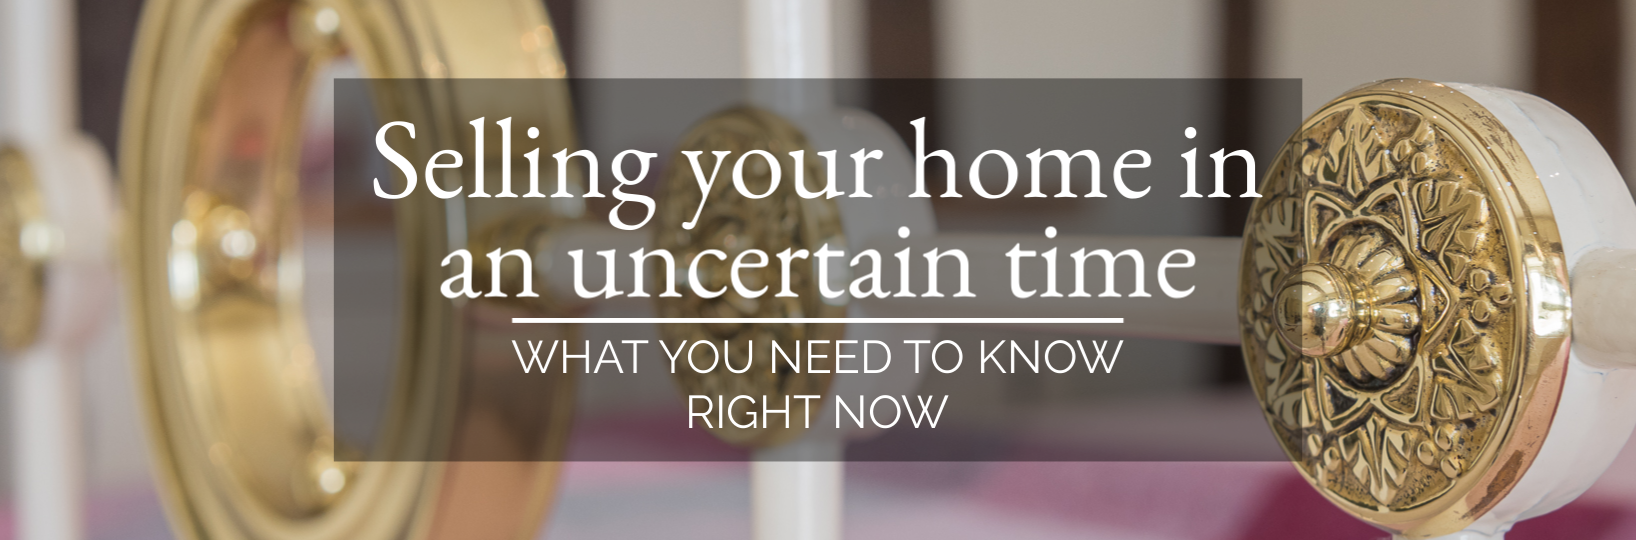 facebook-cover-art-selling-your-home-in-an-uncertain-time